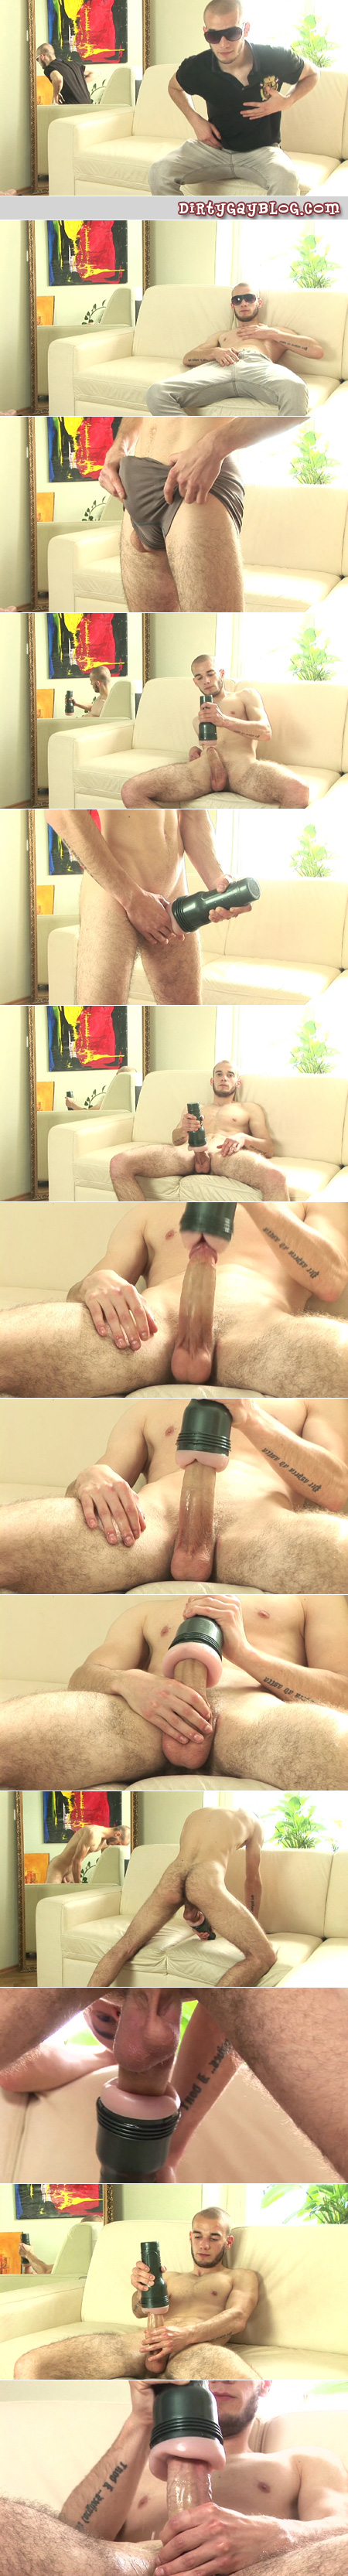 Hairy young fit guy masturbating his uncut cock with a Fleshlight.